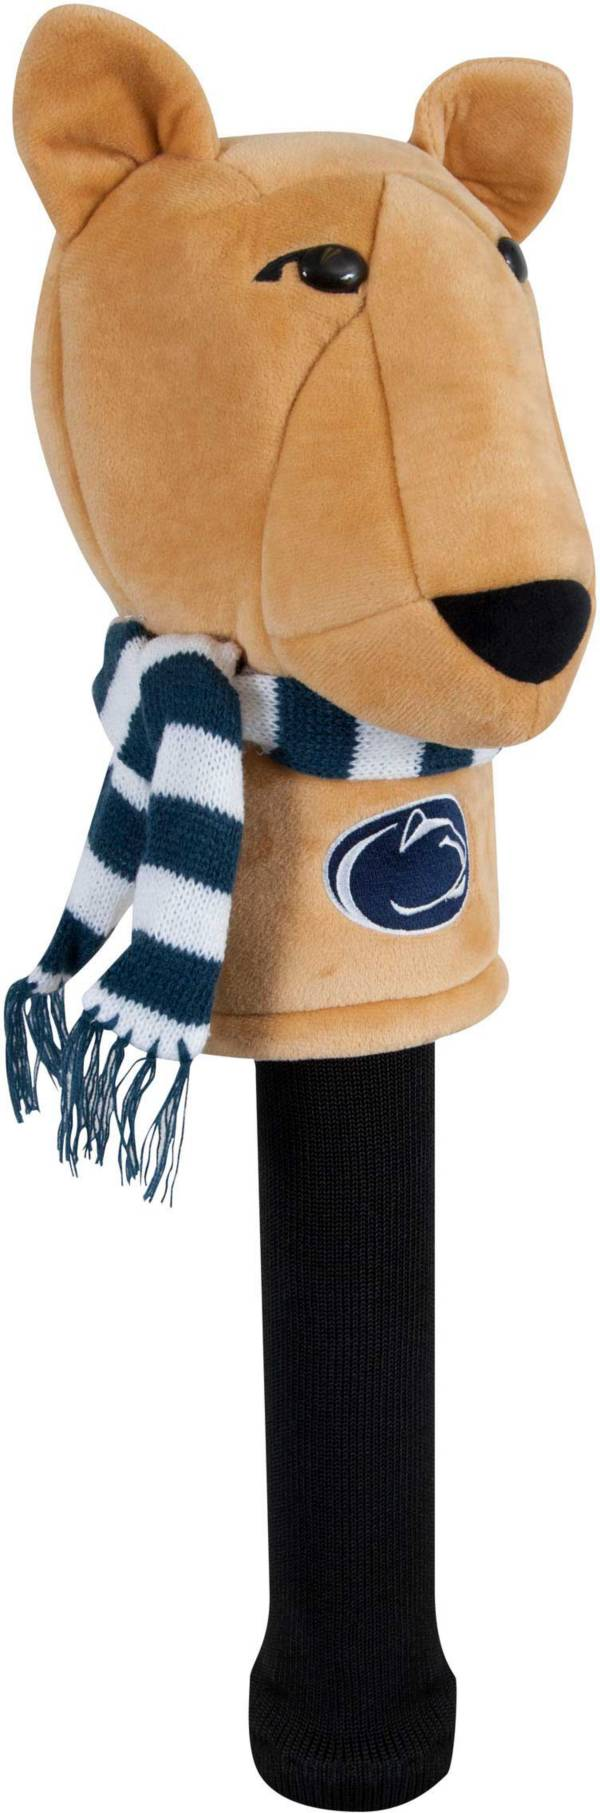 Team Effort Penn State Nittany Lions Mascot Headcover product image